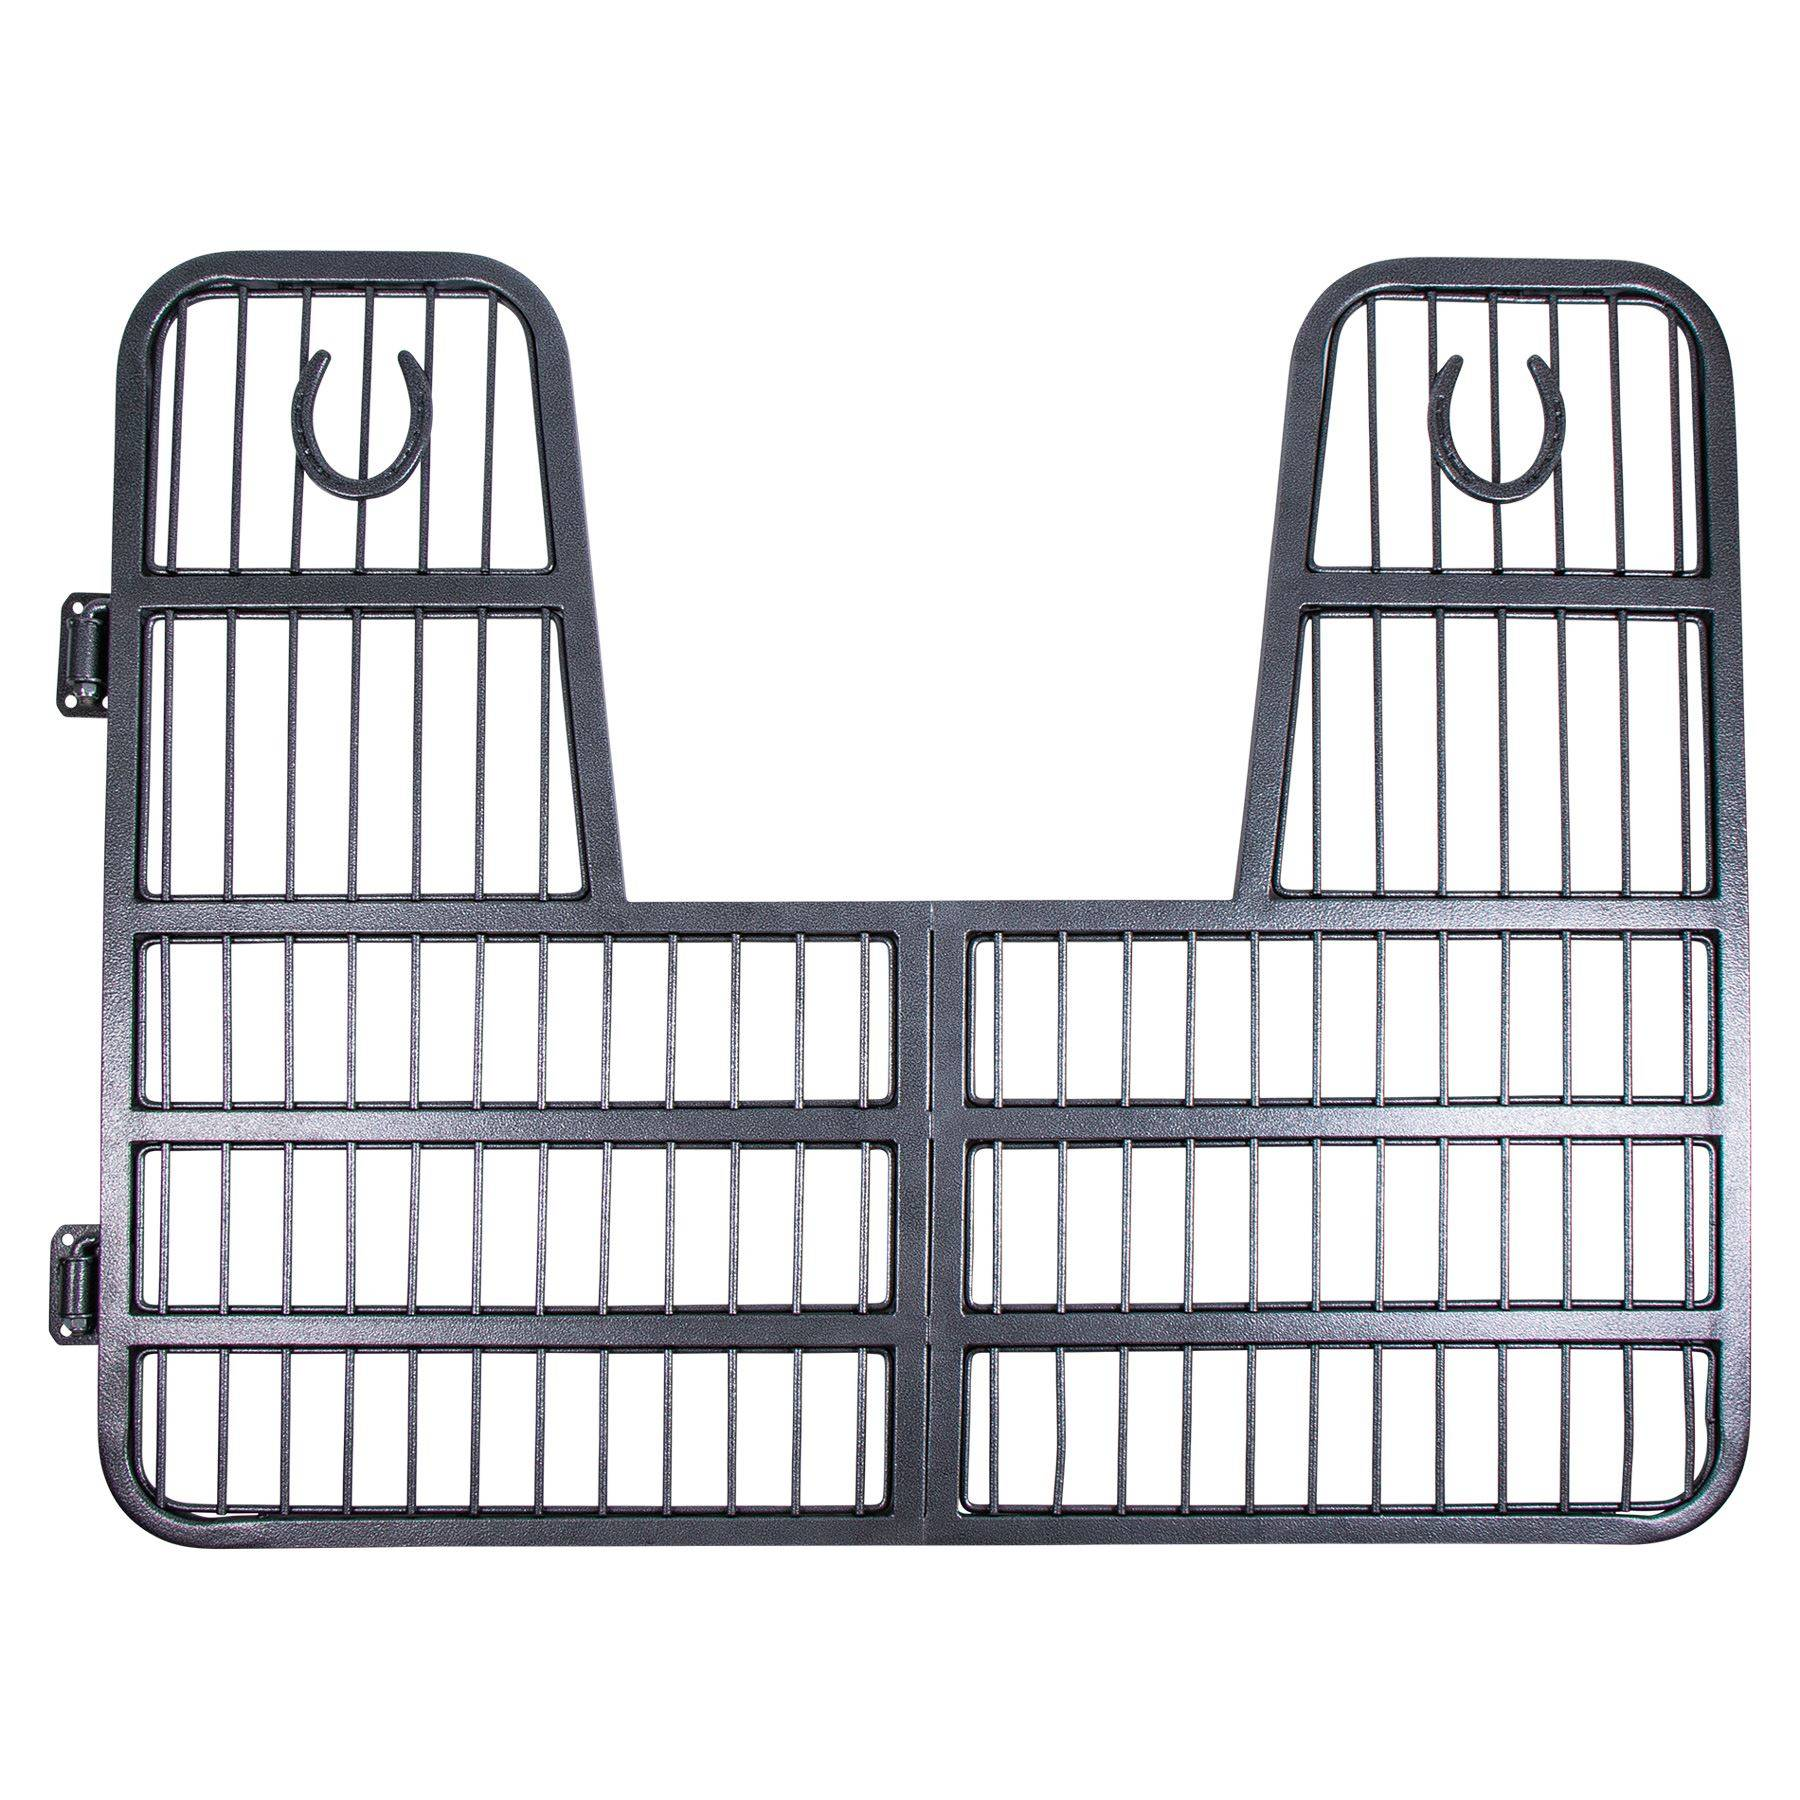 Easy Up 174 Titan Horseshoe Stall Gate With Yoke 52 Quot Wide